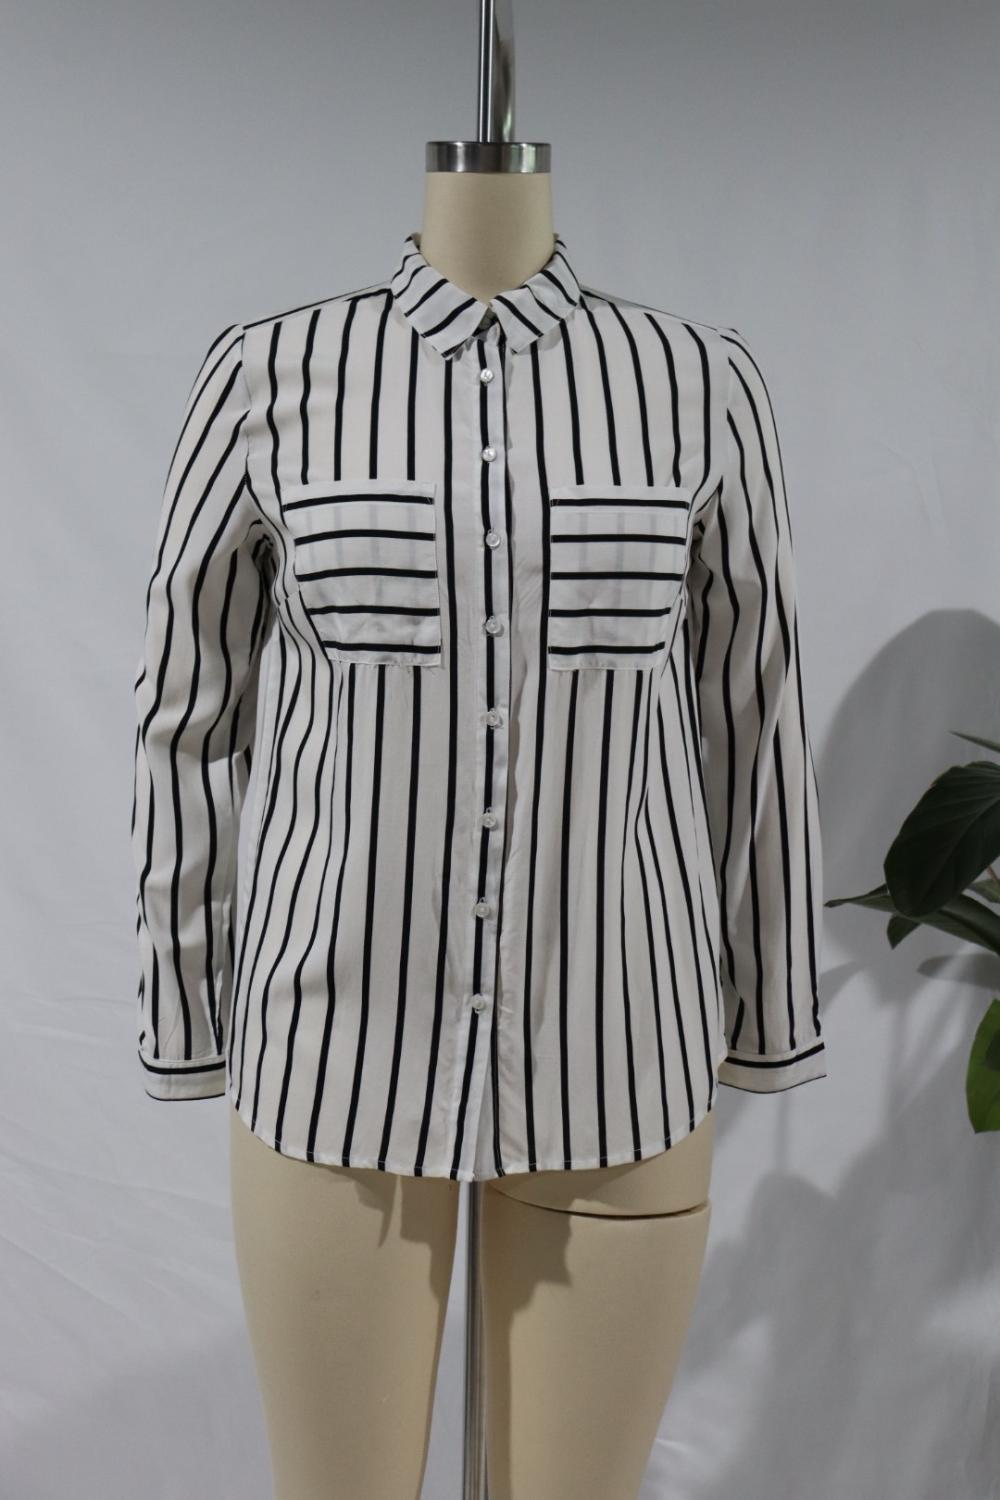 Printed Shirt With Long Sleeves And Standing Collar